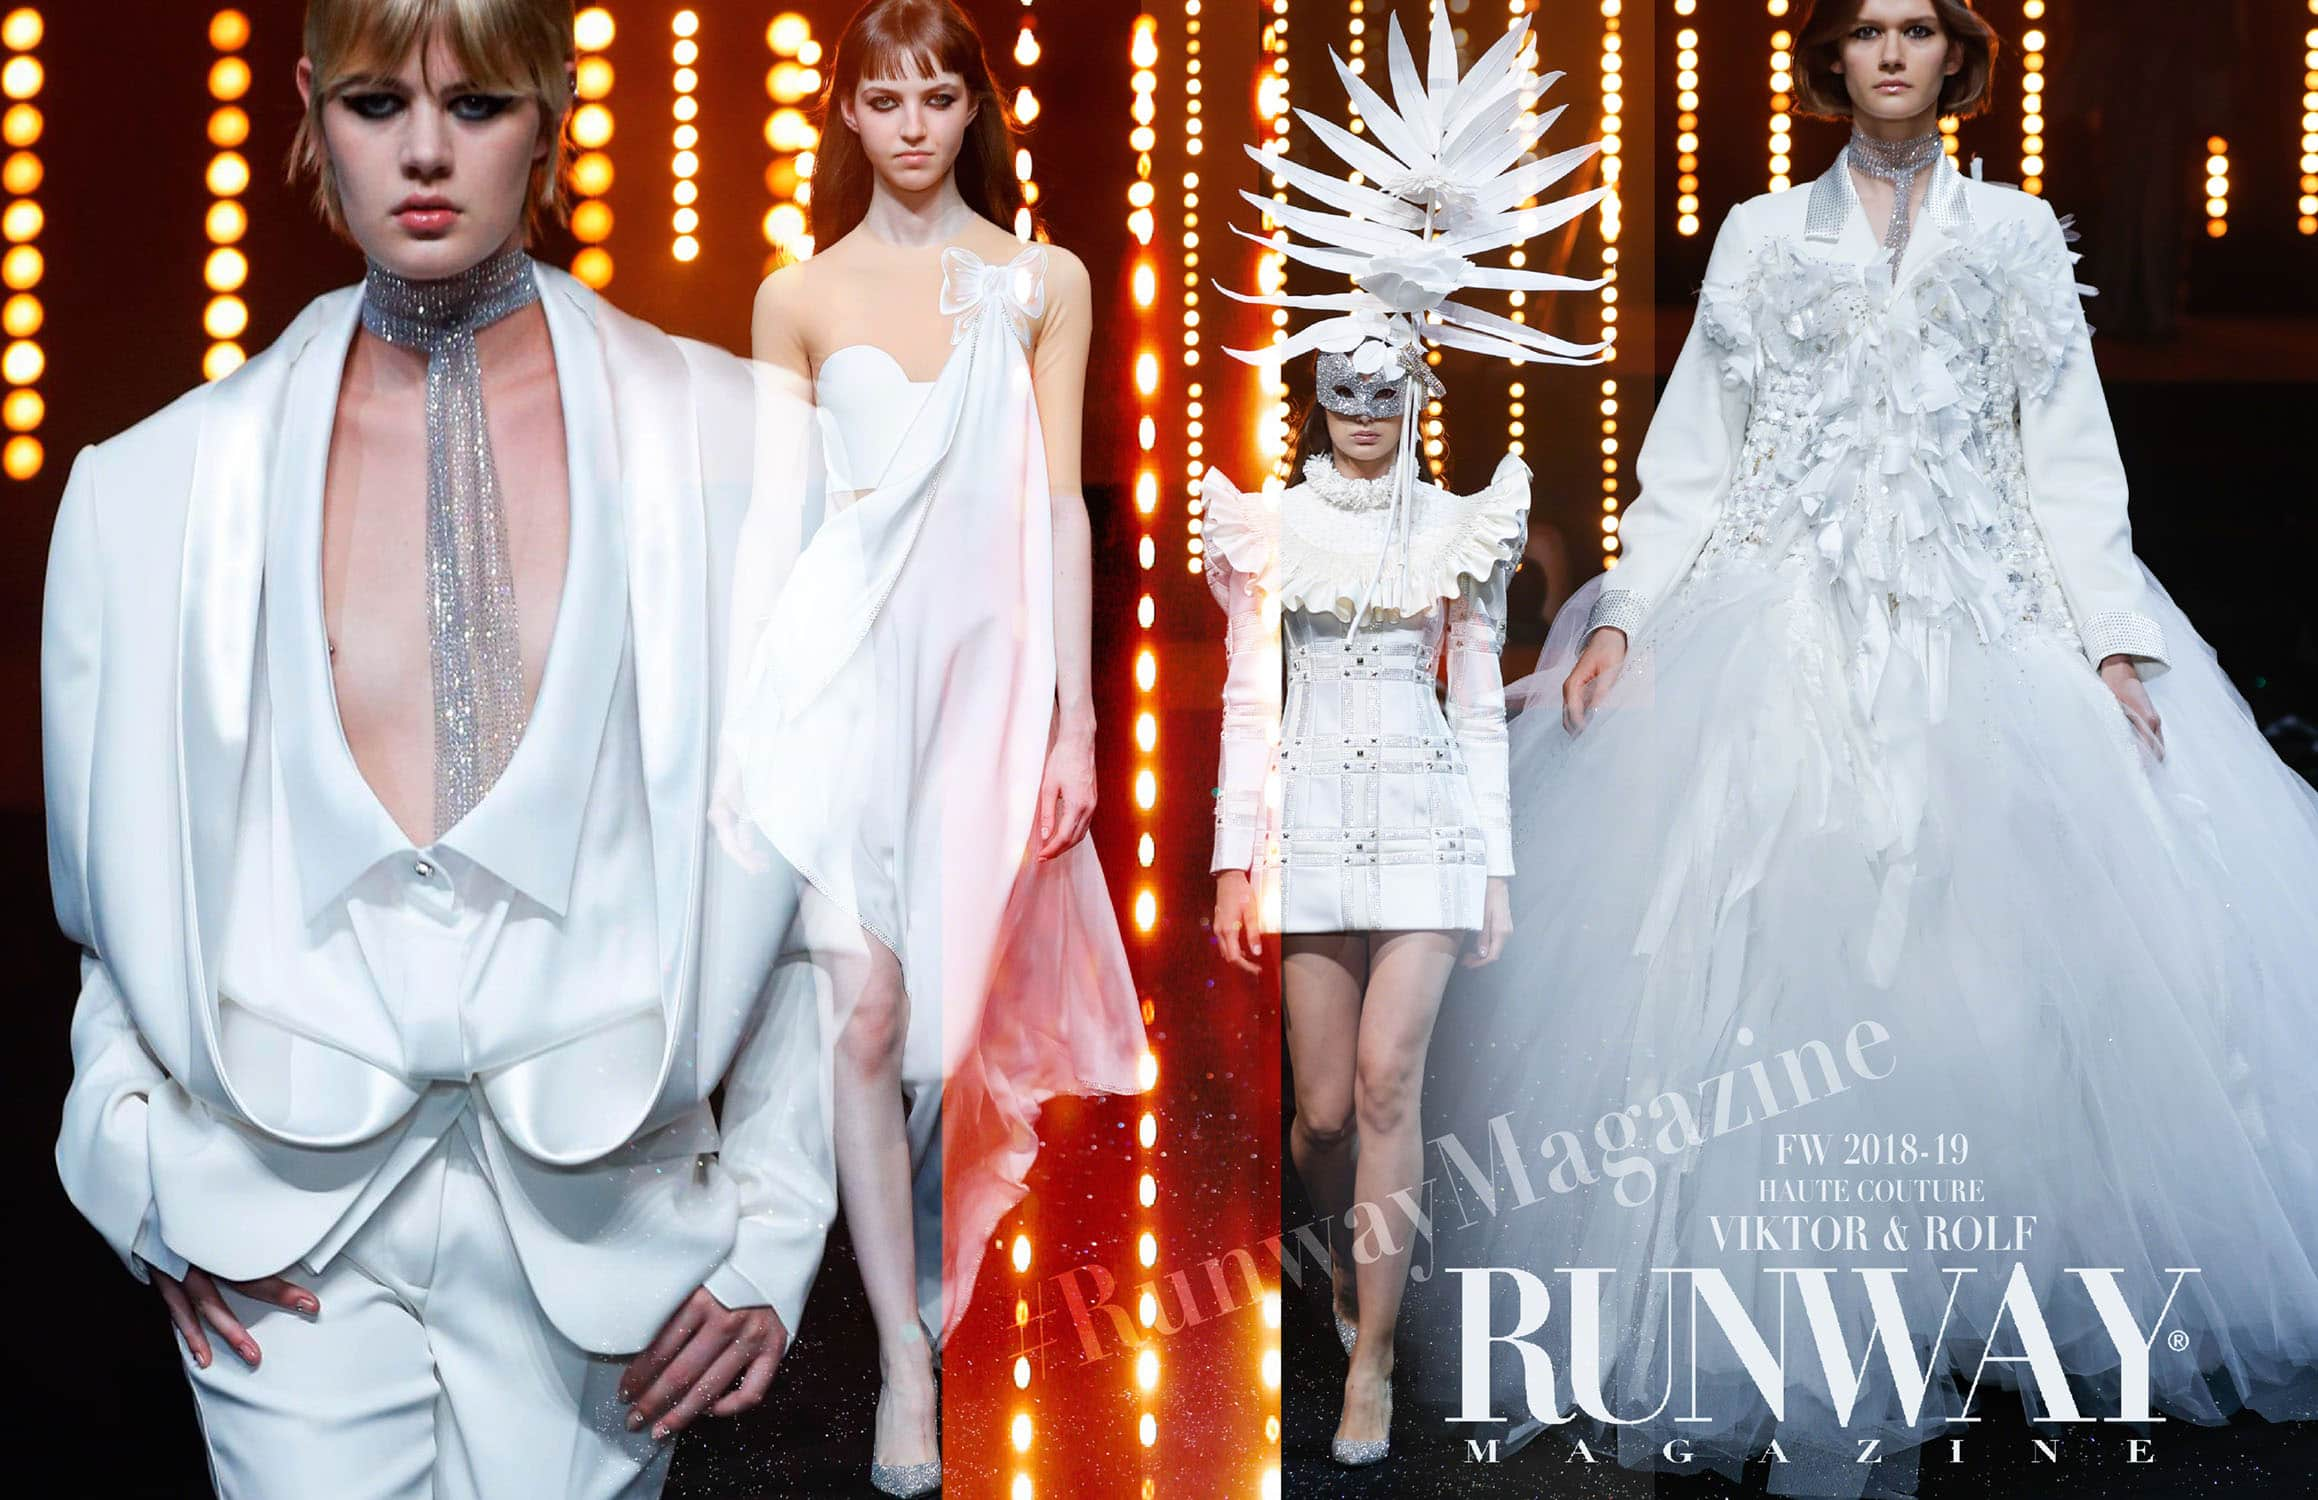 Viktor Rolf Haute Couture Fall-Winter 2018-19 by RUNWAY MAGAZINE